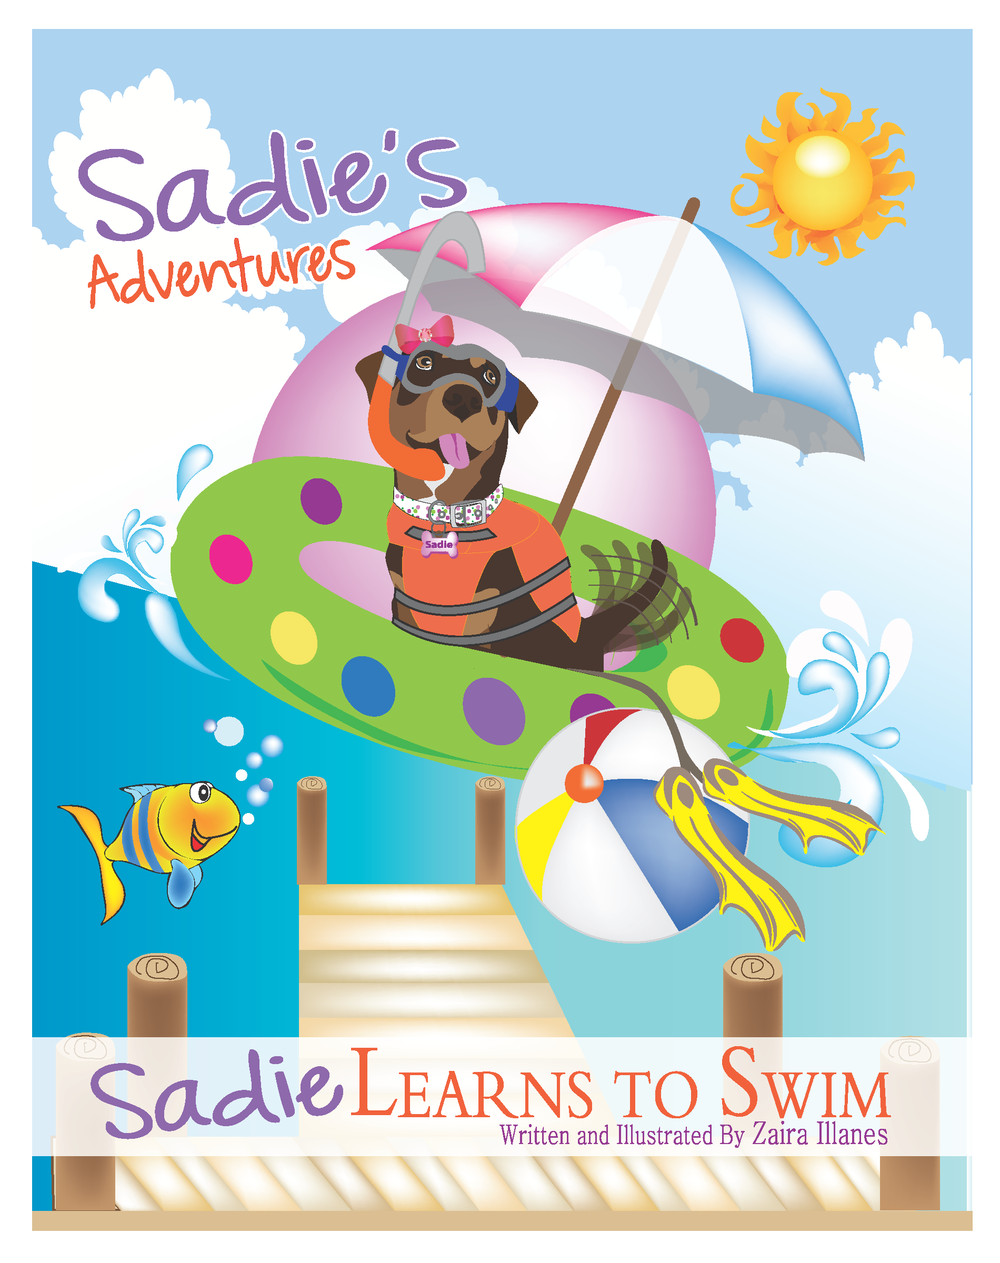 Sadie's Adventures cover art